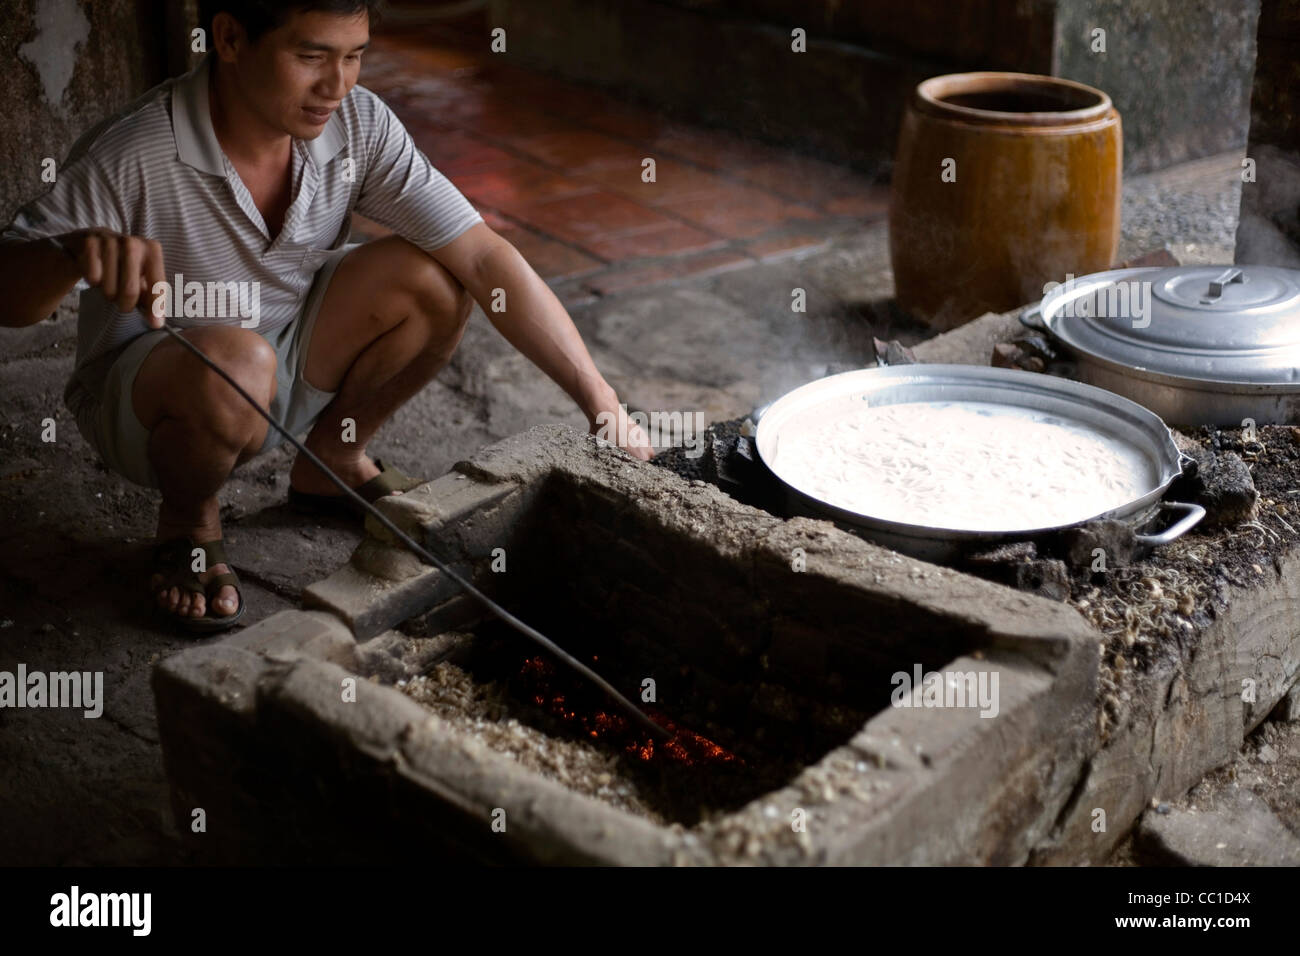 A man feed a fire to boil noodles in the traditional manner in a pot at a family farm, Tay Ninh, Vietnam - Stock Image